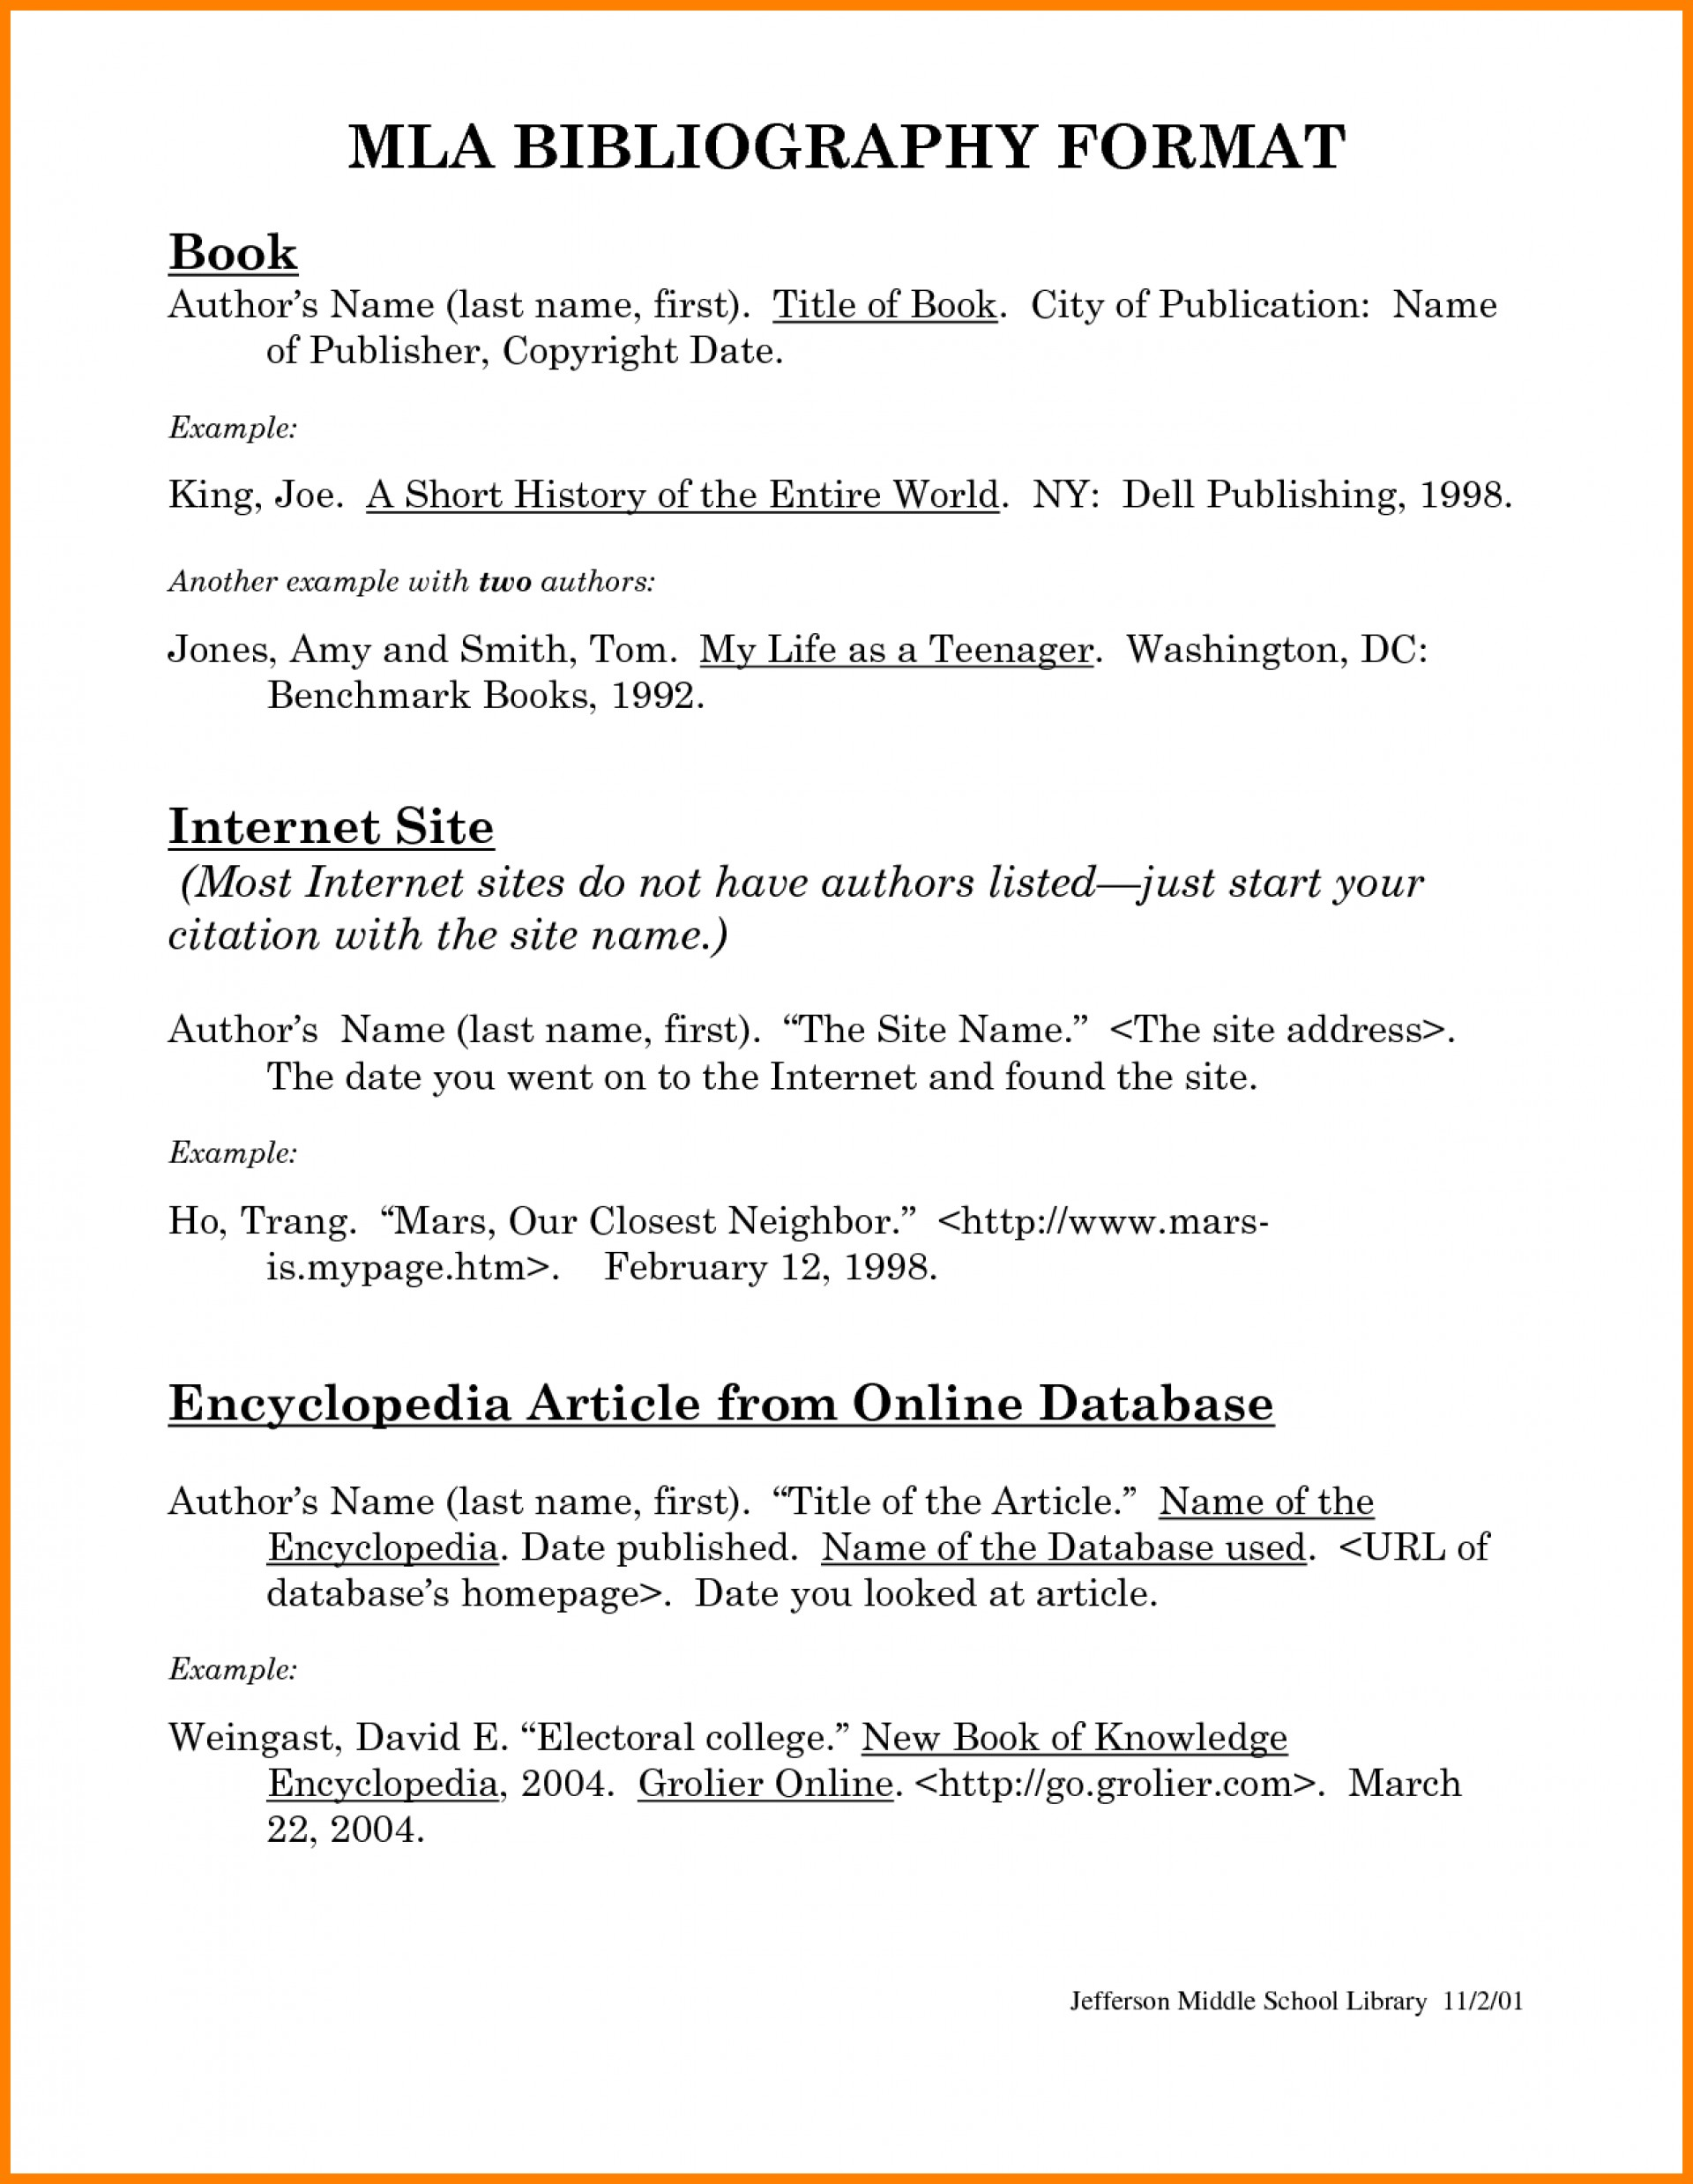 003 Research Paper Mla Citation Striking Example Format Encyclopedia Article Book Purdue Owl 1920